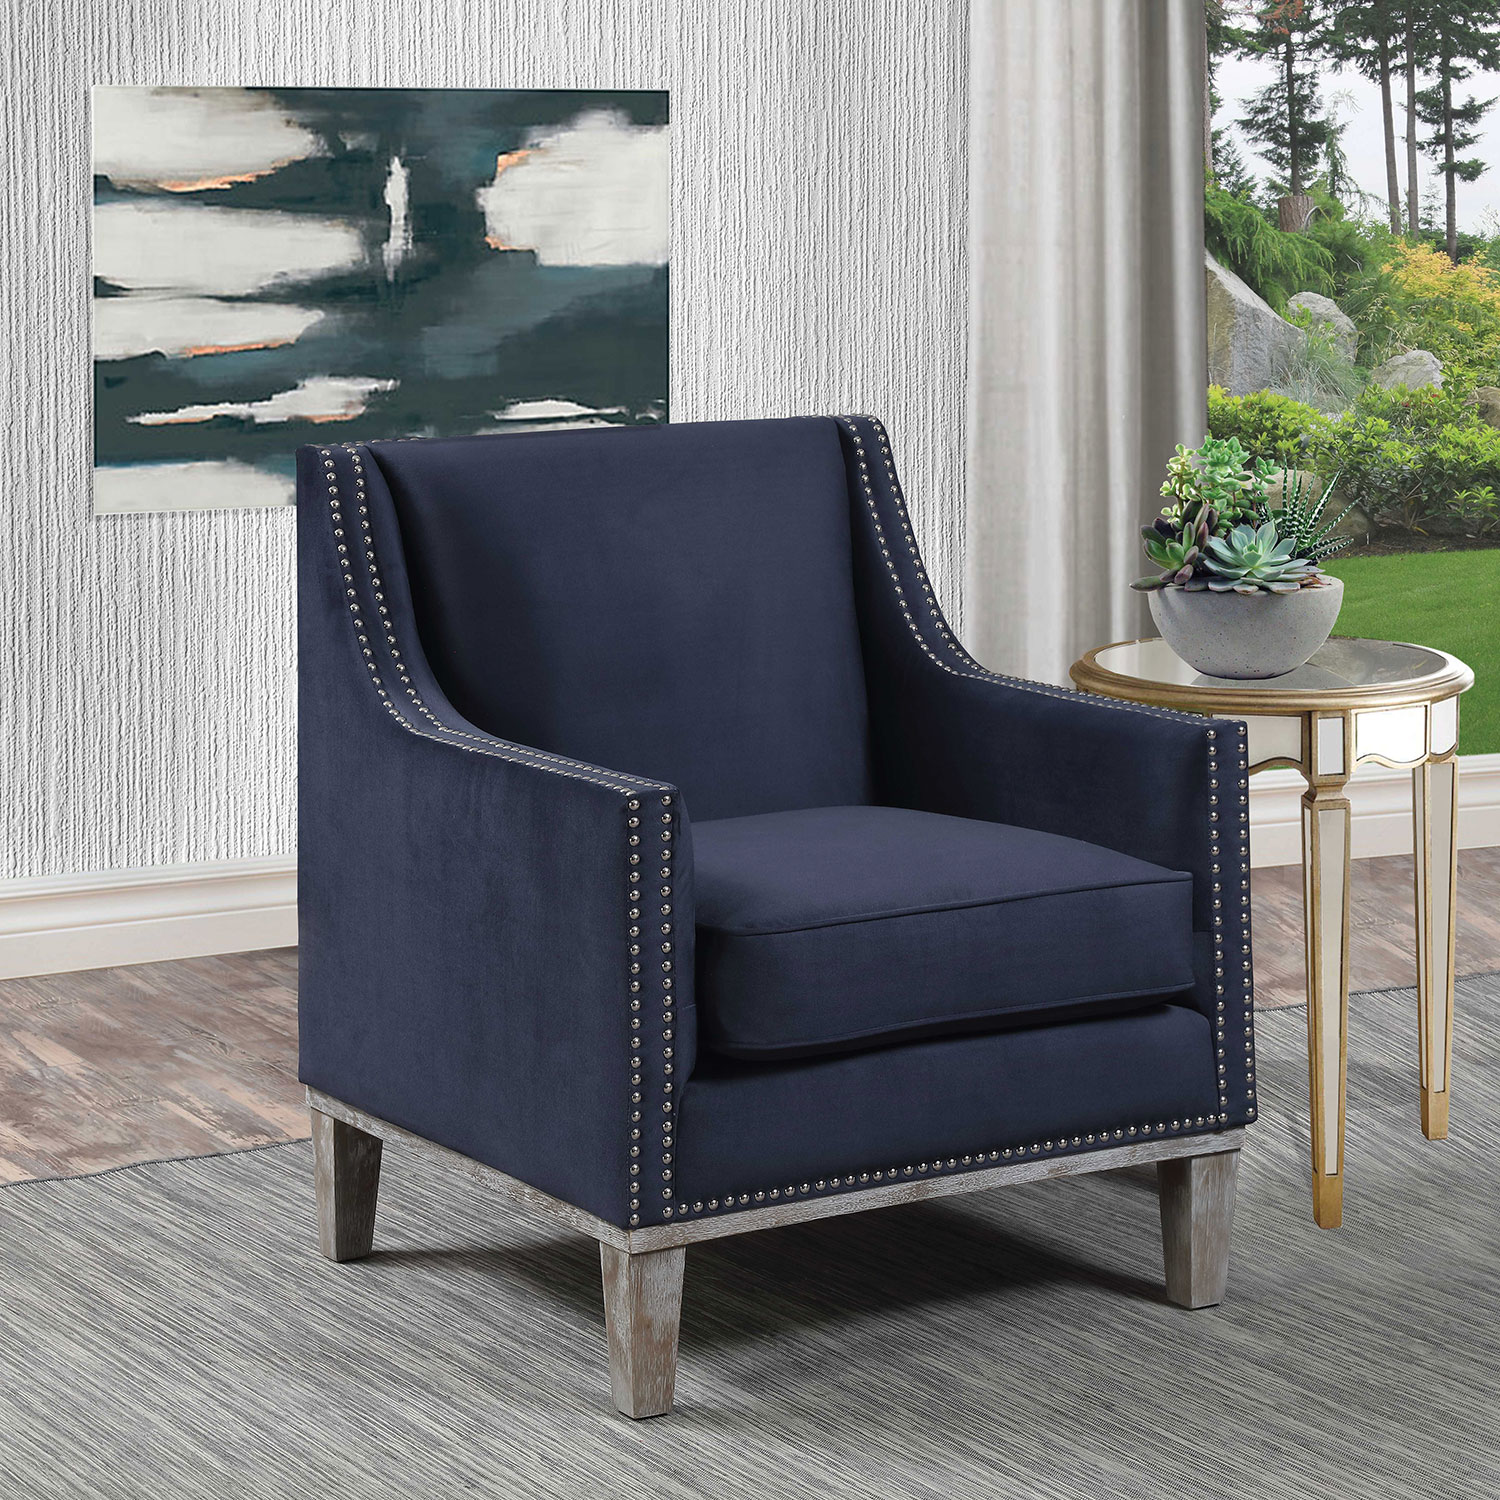 Best Buy Canada Furniture Event Sale Save 320 Off Accent